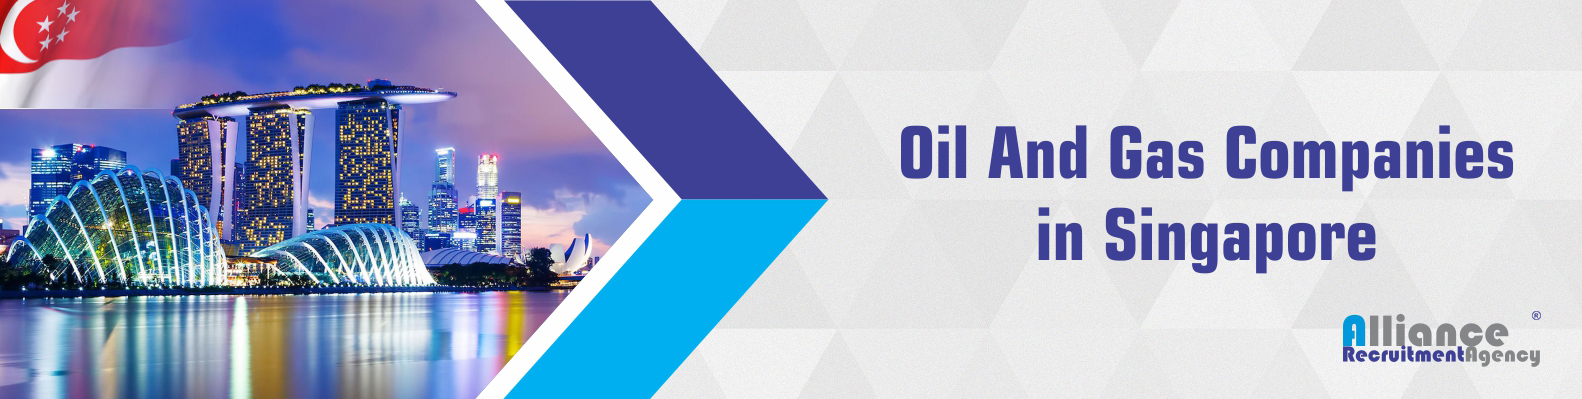 Oil and Gas Companies - International Recruitment Agencies Oil and Gas